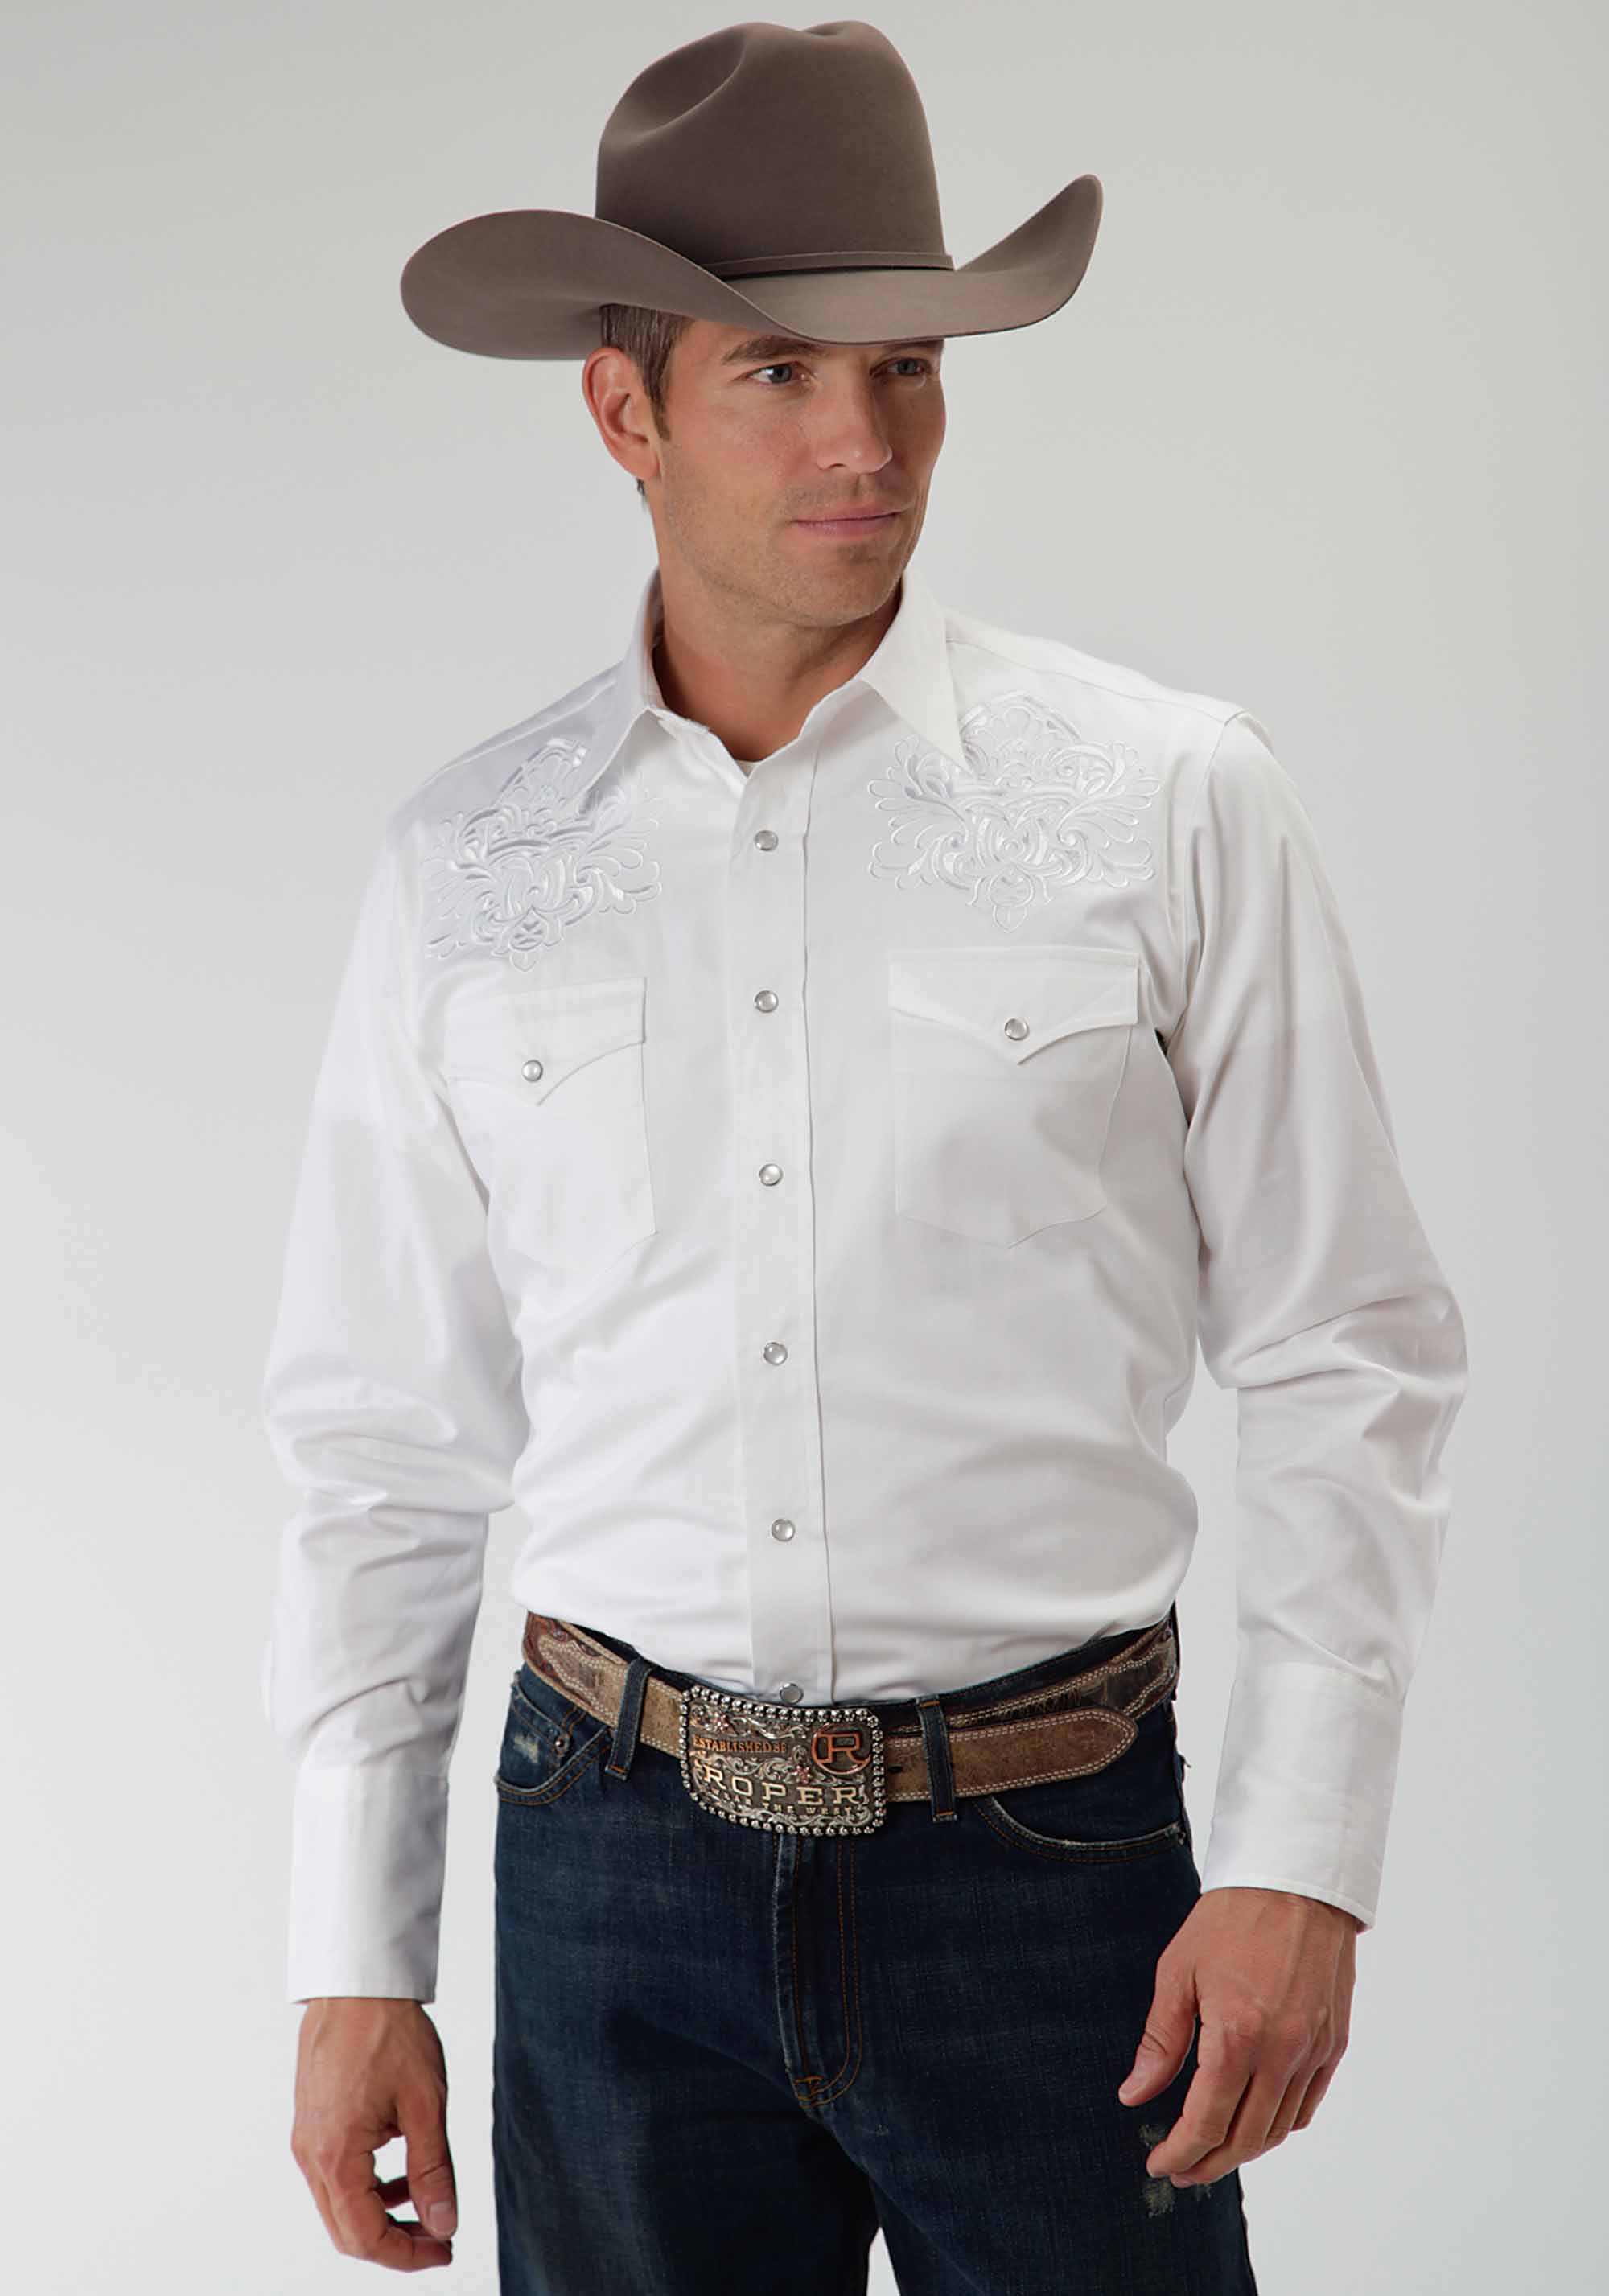 Mens Short Sleeve Dress Shirts White